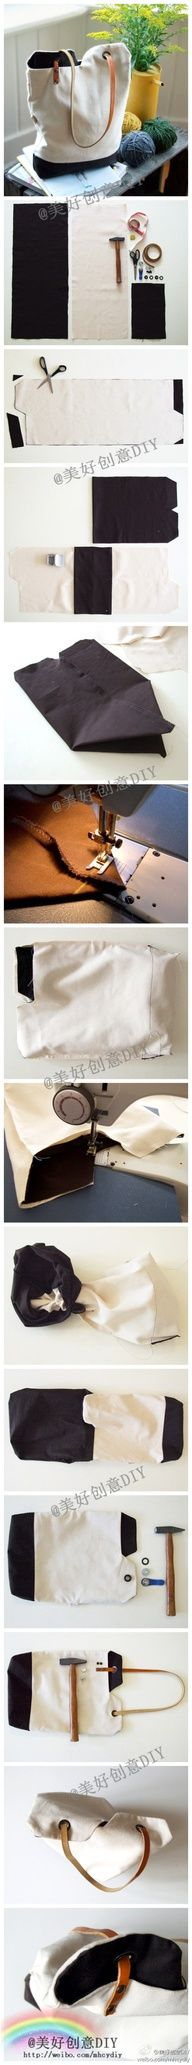 "DIY bag"" data-componentType=""MODAL_PIN"